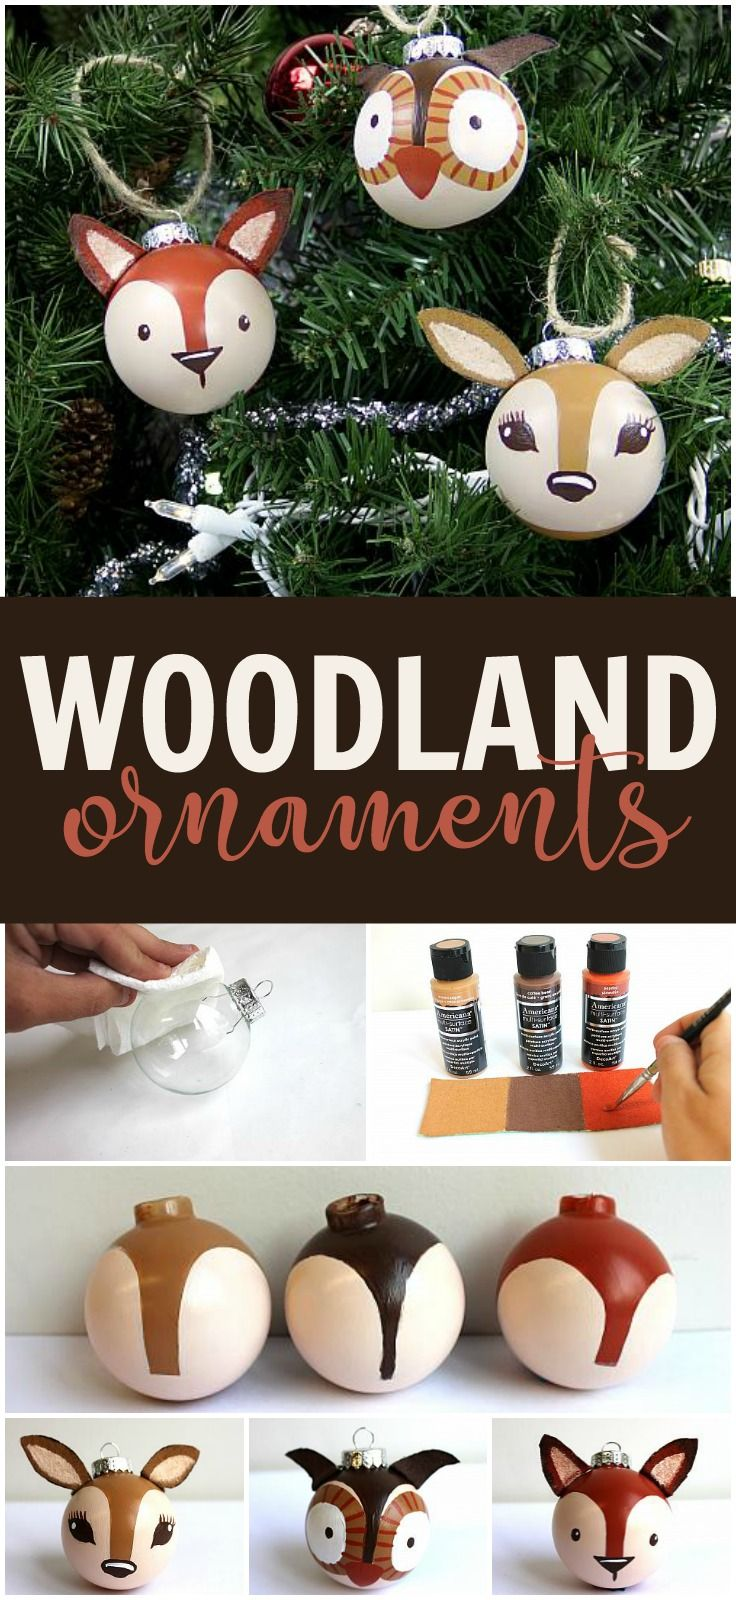 Turn a plain round ornament into a cute woodland creature